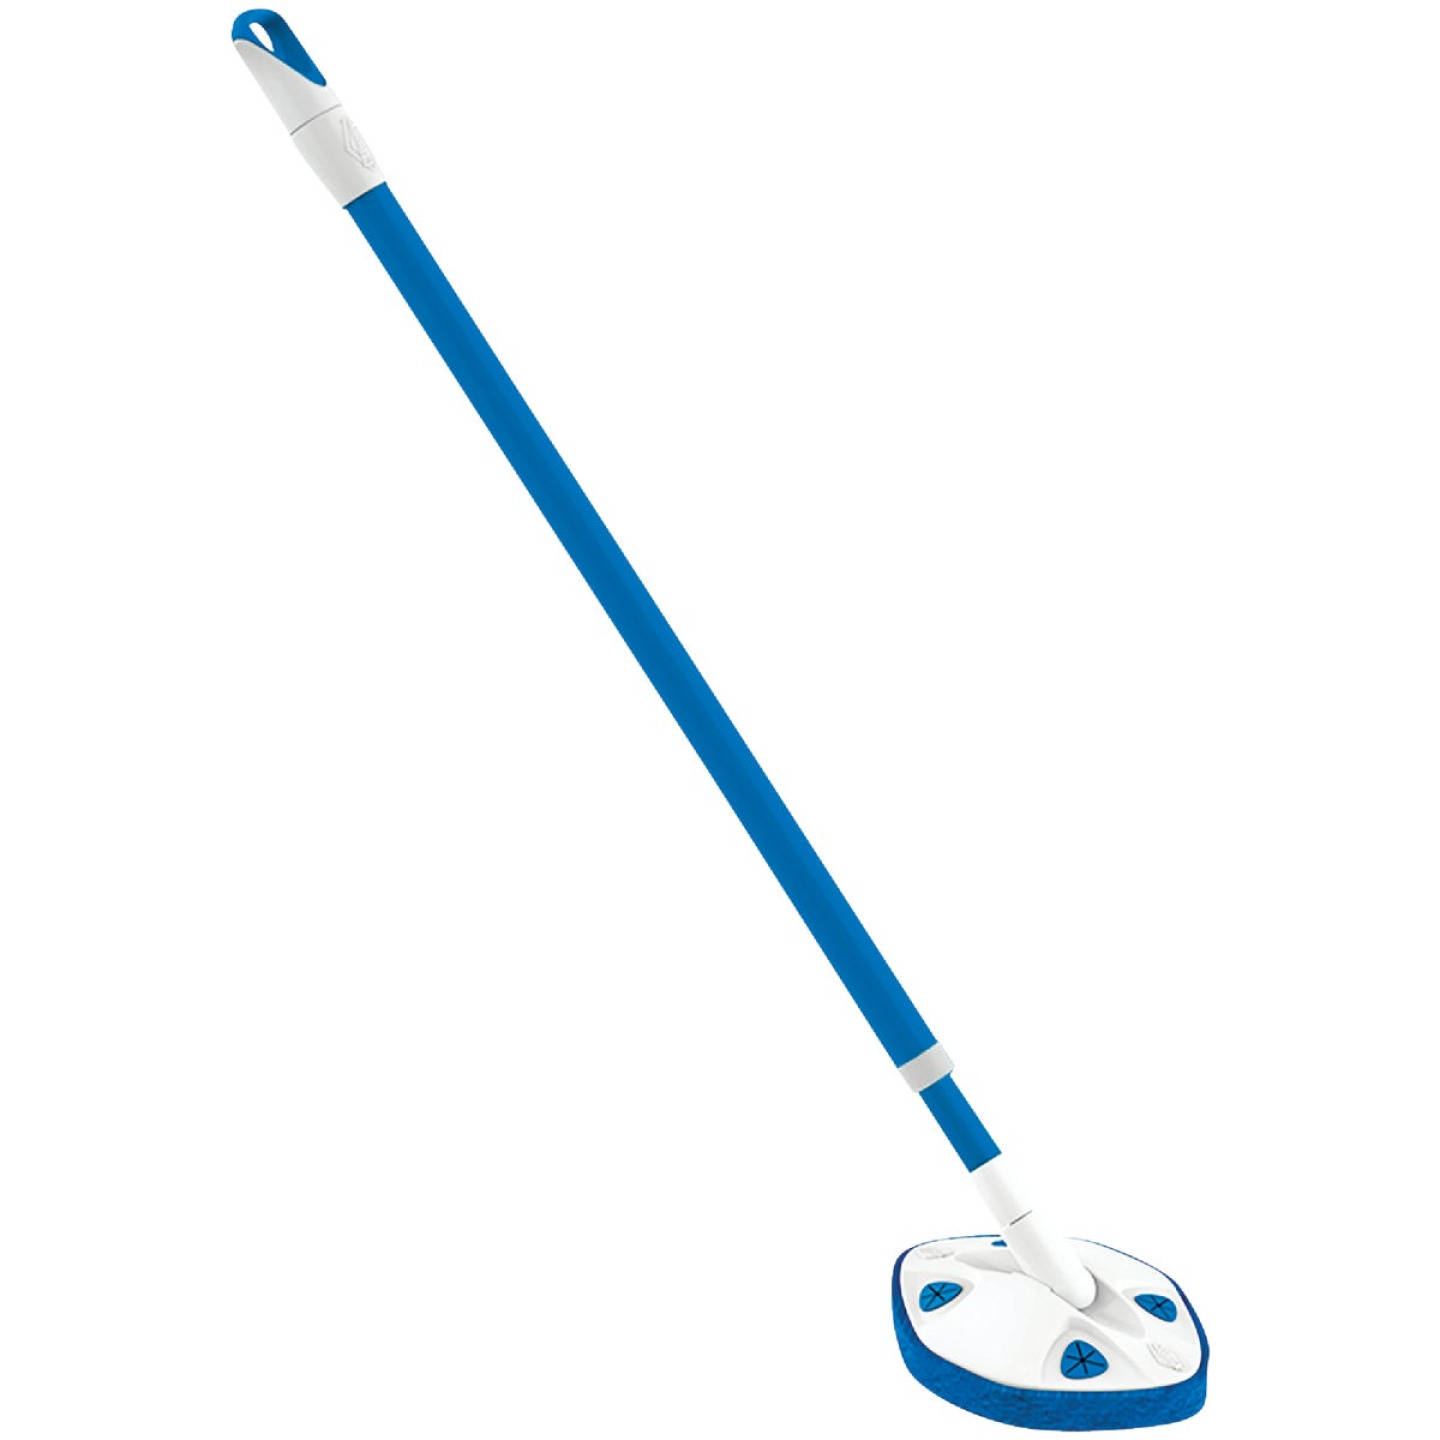 Clorox Extendable Handle Tub & Tile Scrubber Image 1